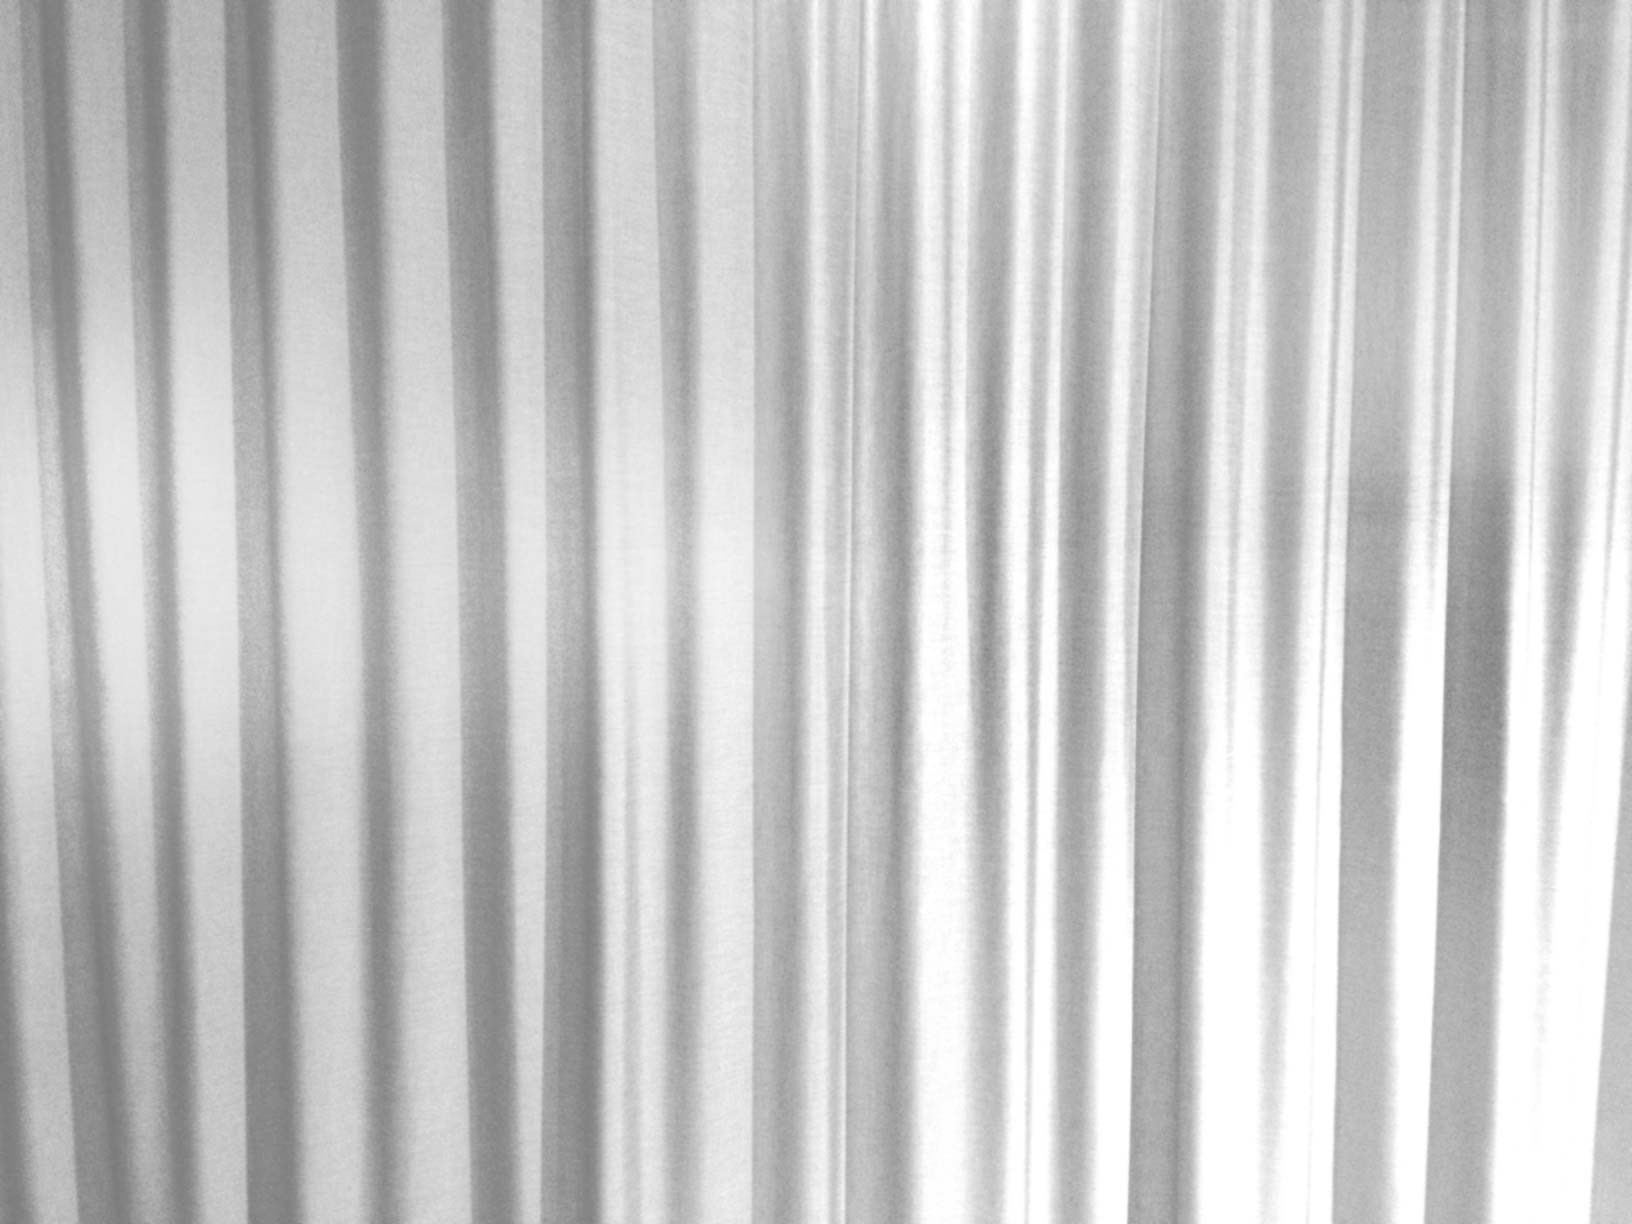 White curtains - White Curtain Background White Curtain Background